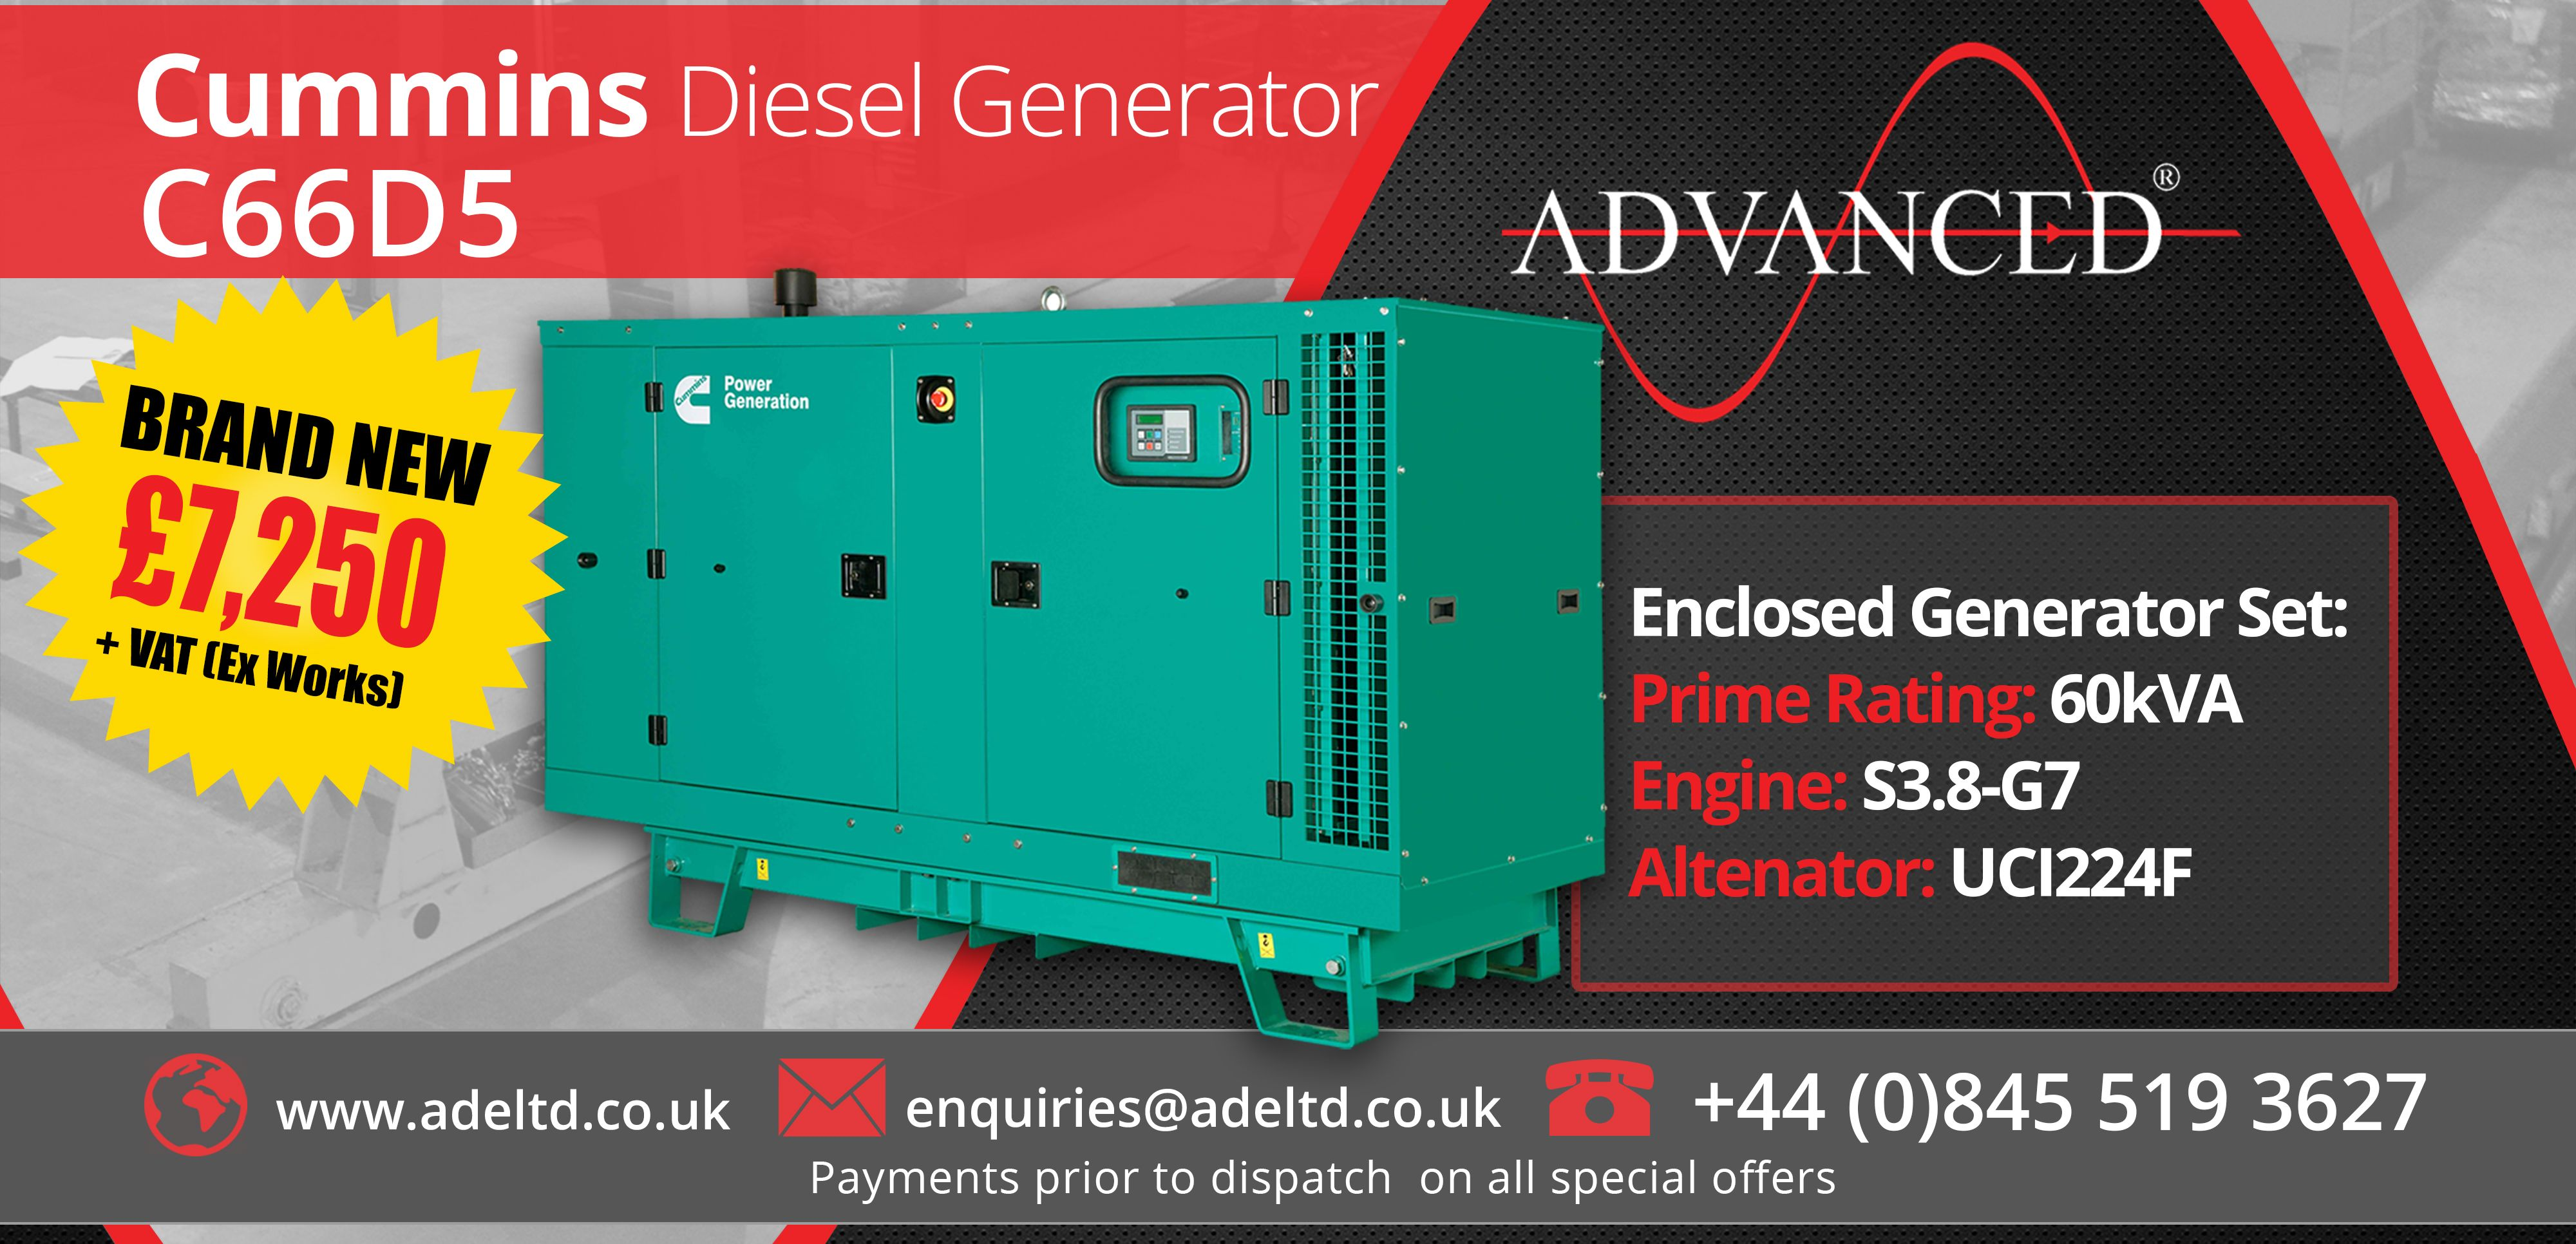 Diesel Generators Latest Offers Pinterest Water Heater Circuit Cummins C66d5 66kva Stand By 60kva Prime Enclosed Set With Battery Charger Breaker And Base Fuel Tank Only 7250 Visit For More